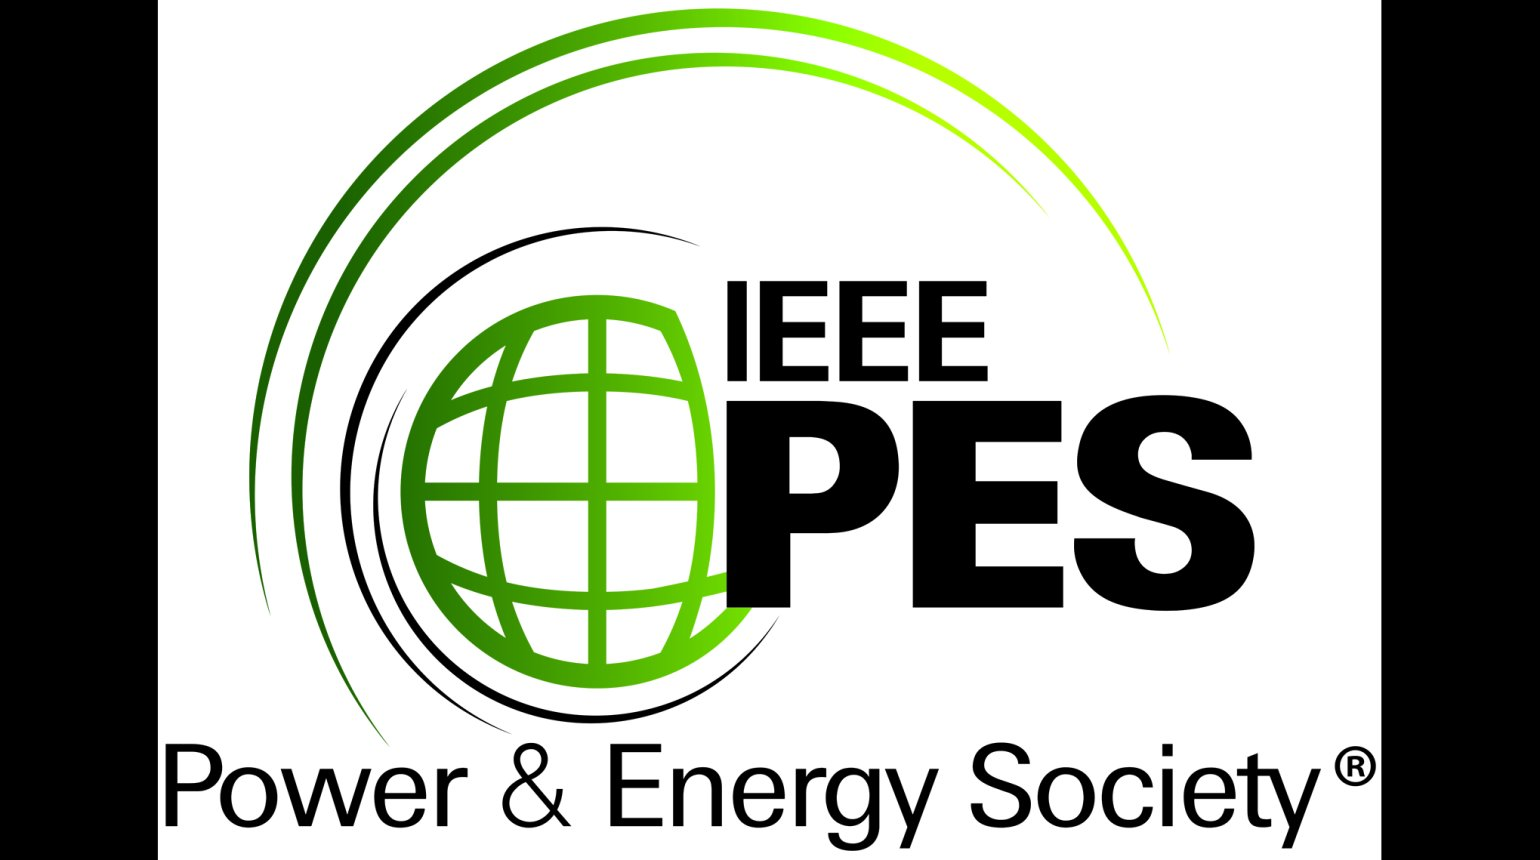 IEEE Power & Energy Society